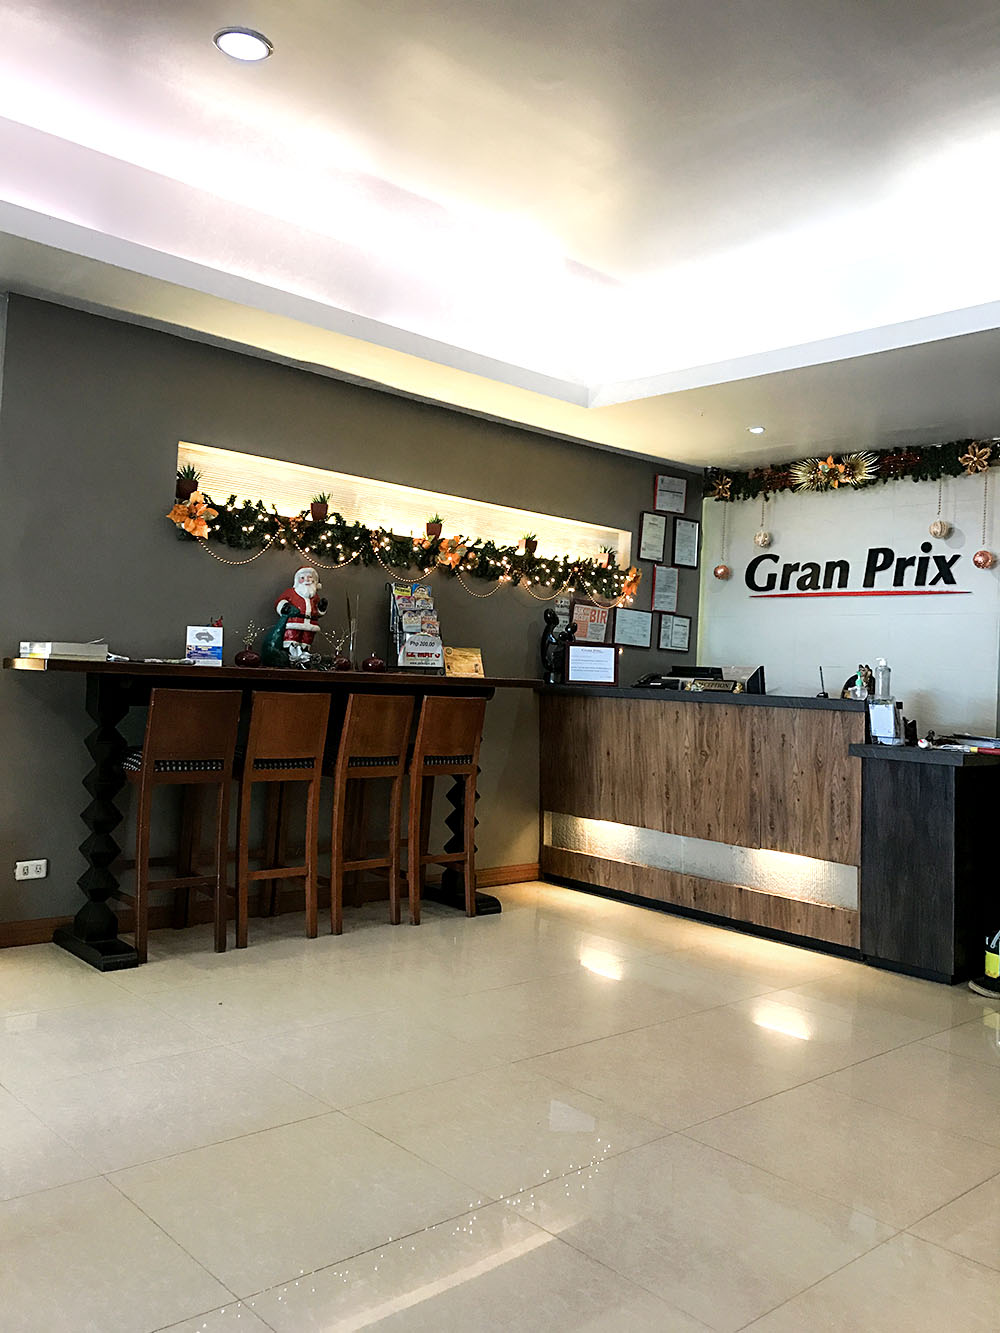 Affordable Hotel in Malate: Gran Prix Hotel Manila